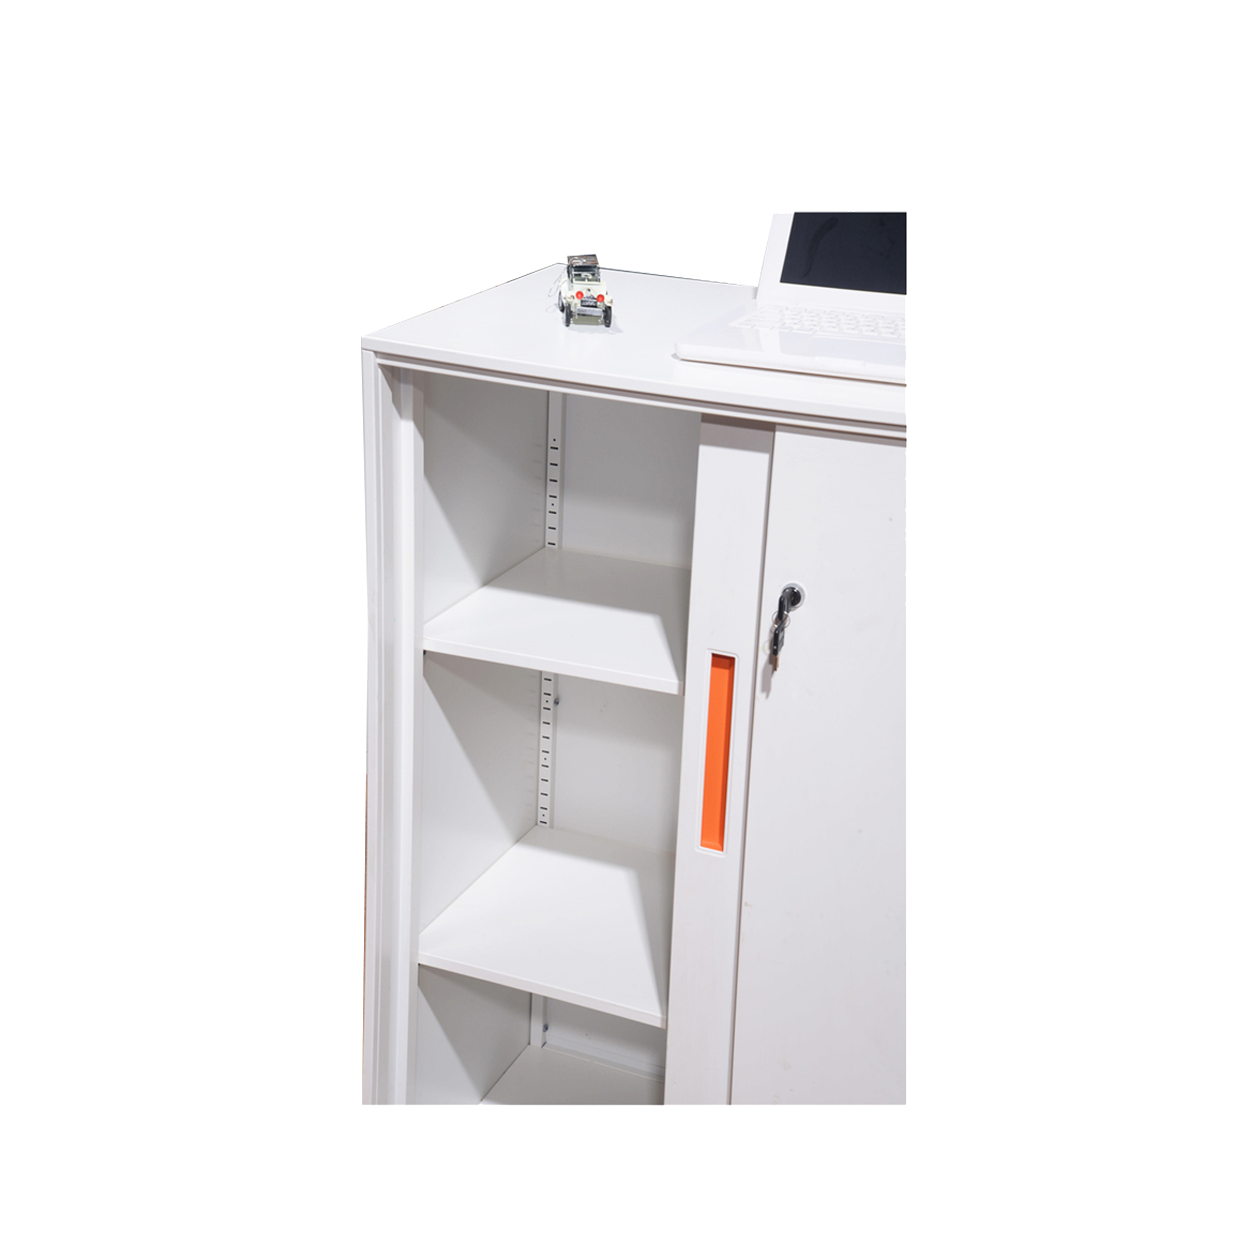 steel file cupboard for office silding door knockdown metal storage cabinets